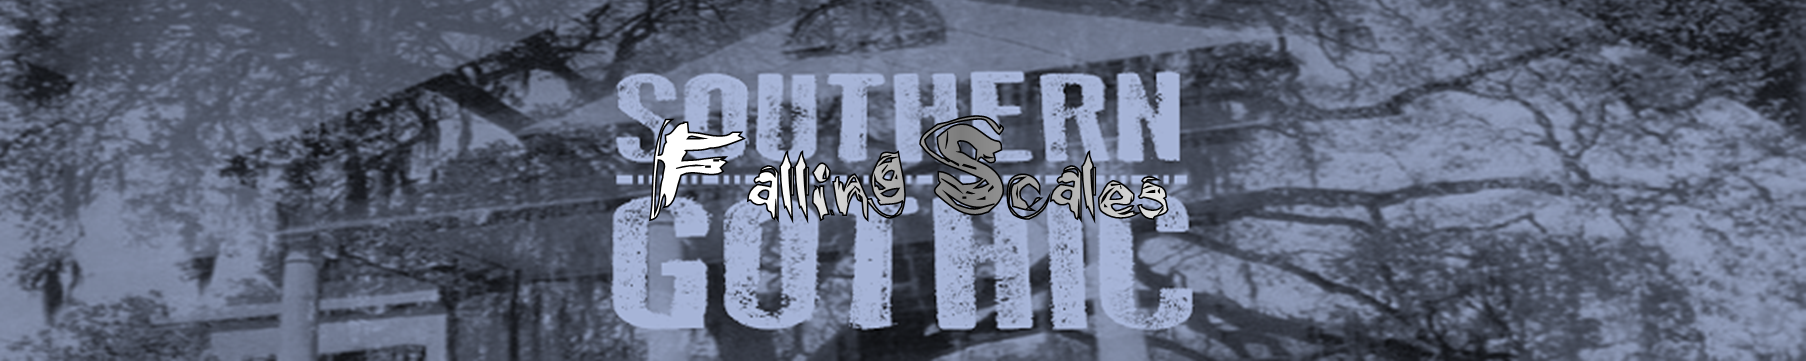 falling_scales_banner.png</a>